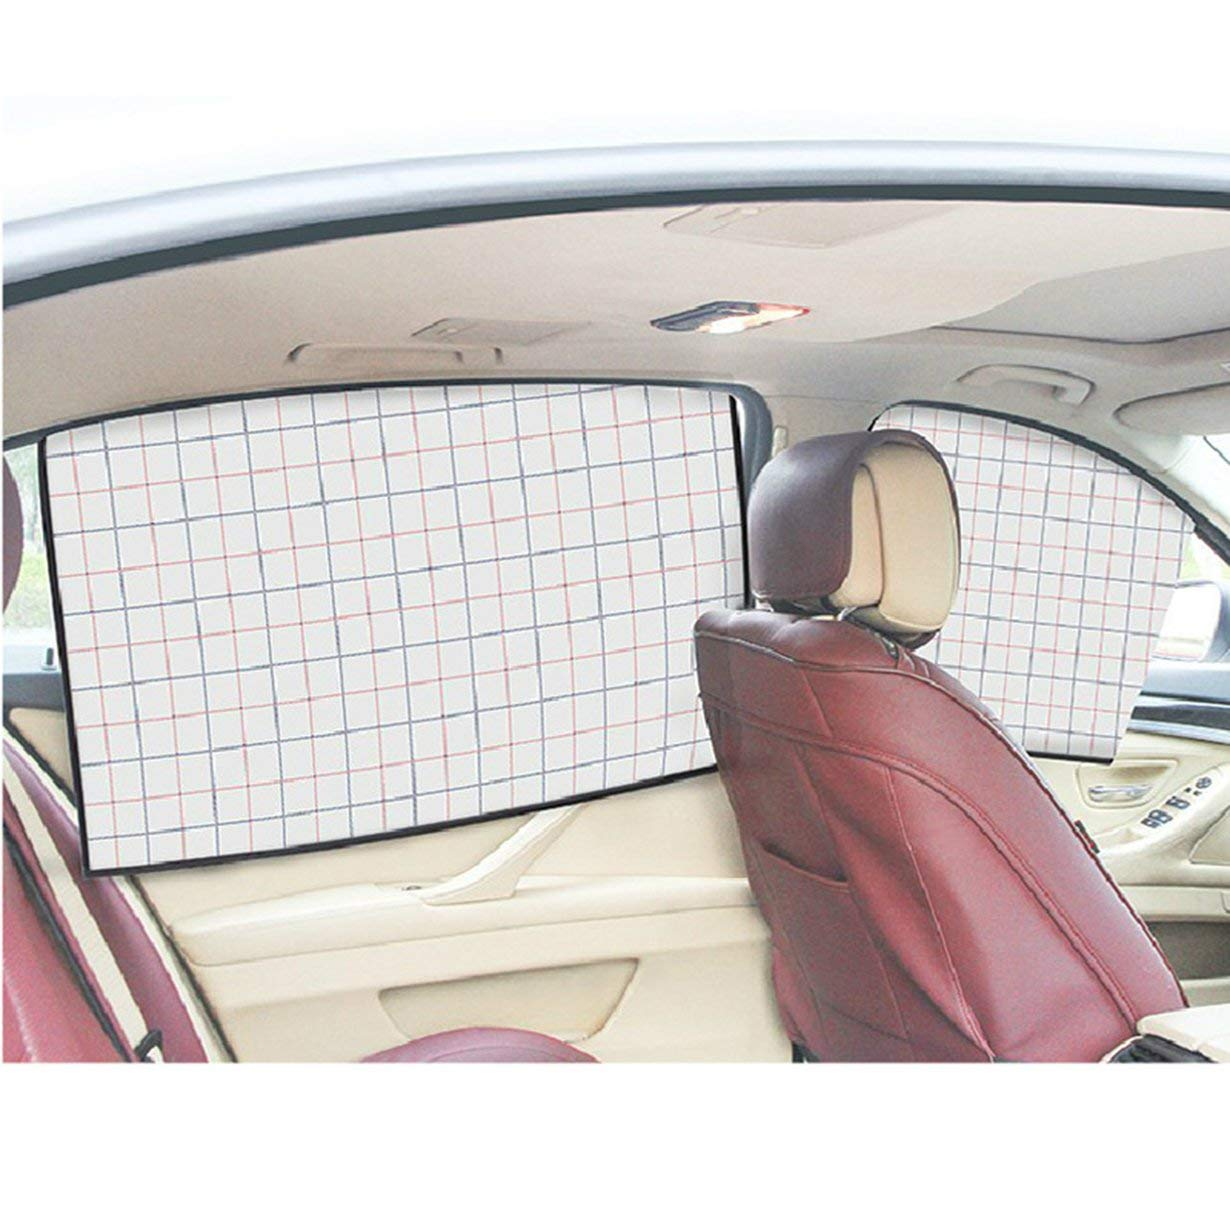 Auto Car Sun Shade Cover Cortina Artoon Proof Side Window Sunshade Cover